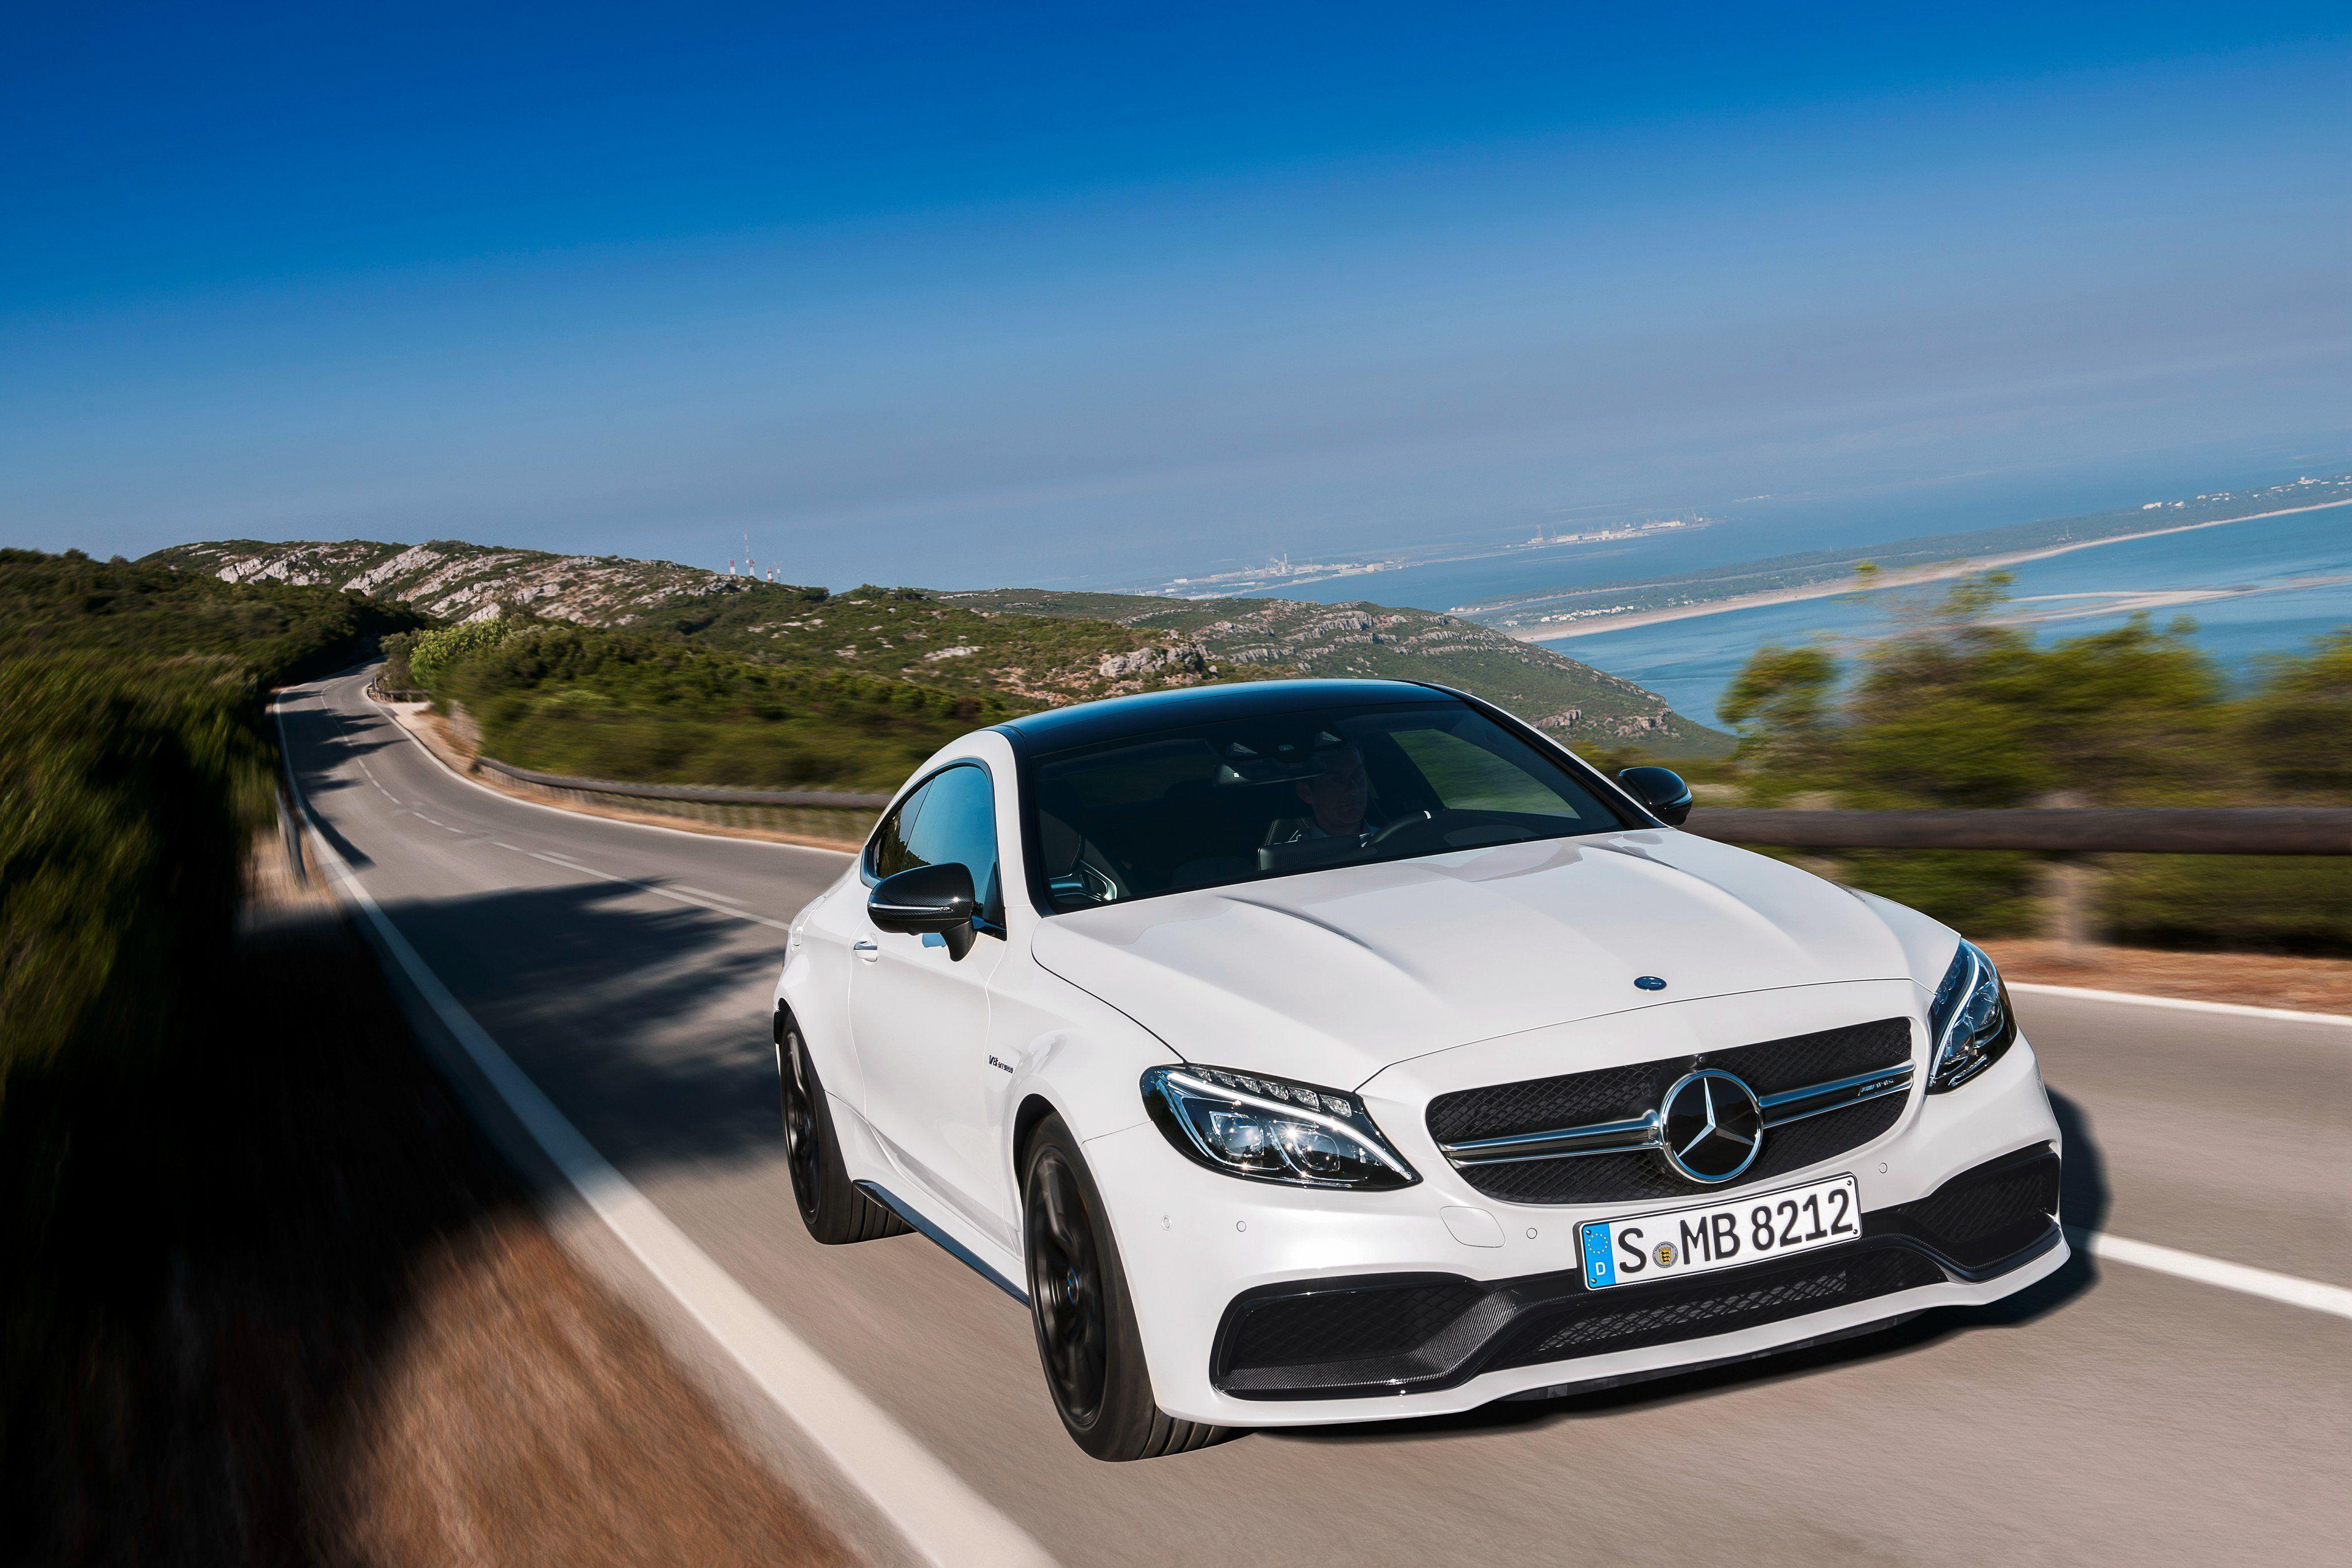 Mercedes AMG C63 S Coupe Wallpapers 4096x2731